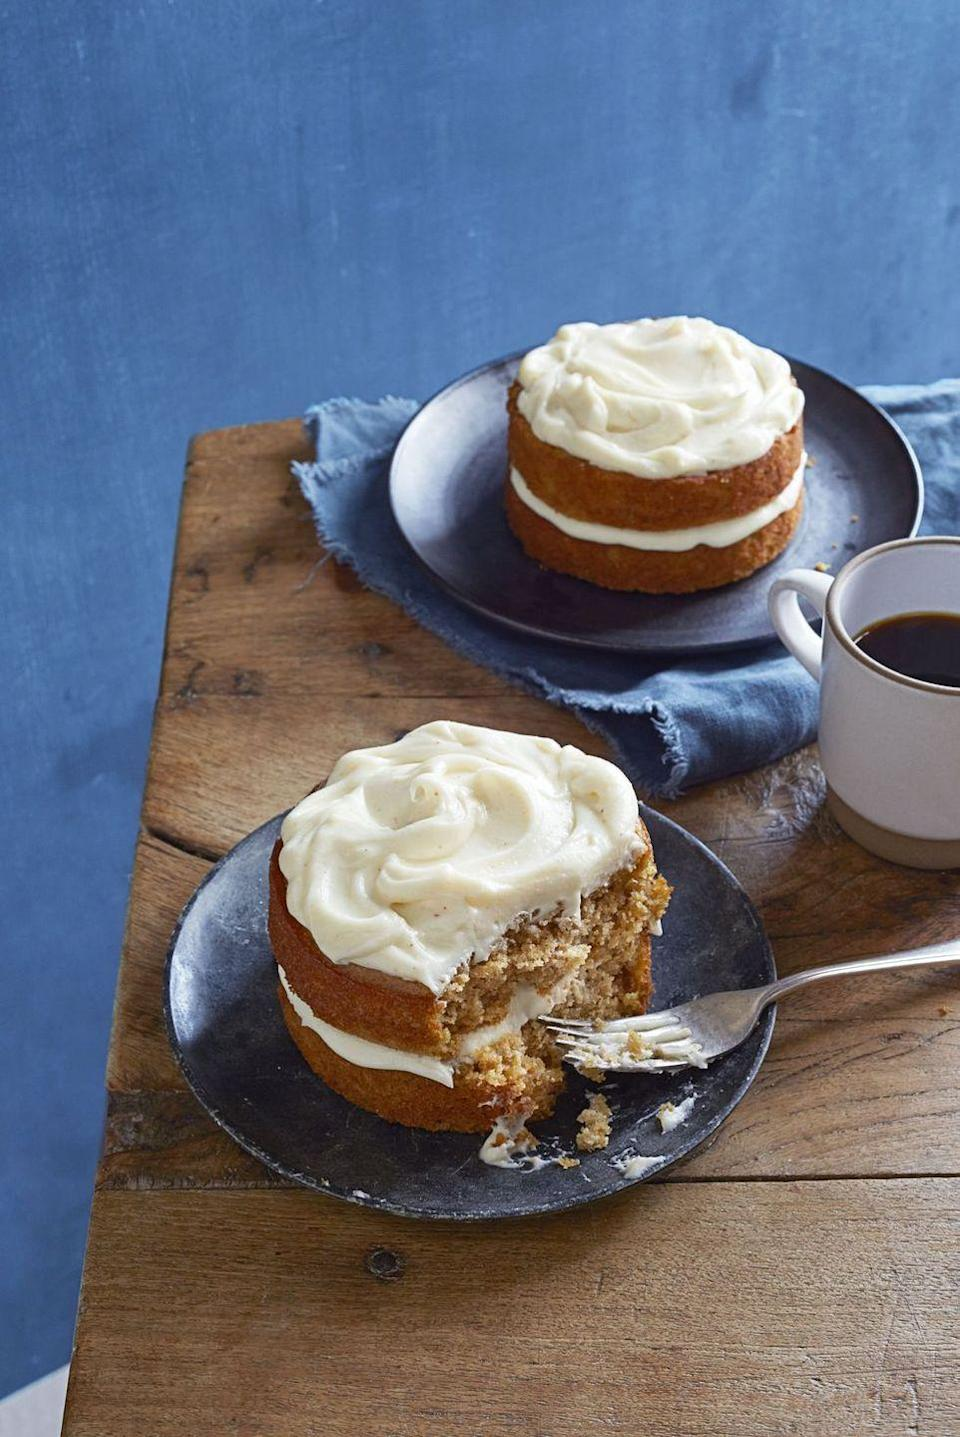 "<p>Root veggies are the secret ingredient to this spiced fall cake — <a href=""https://www.goodhousekeeping.com/food-recipes/cooking/tips/g2091/prepare-cook-butternut-squash/"" rel=""nofollow noopener"" target=""_blank"" data-ylk=""slk:butternut squash"" class=""link rapid-noclick-resp"">butternut squash</a> and parsnips add a surprising earthy sweetness.</p><p><em><a href=""https://www.goodhousekeeping.com/food-recipes/a15941/spiced-parsnip-cake-recipe-ghk1014/"" rel=""nofollow noopener"" target=""_blank"" data-ylk=""slk:Get the recipe for Spiced Parsnip Cake »"" class=""link rapid-noclick-resp"">Get the recipe for Spiced Parsnip Cake »</a></em></p>"